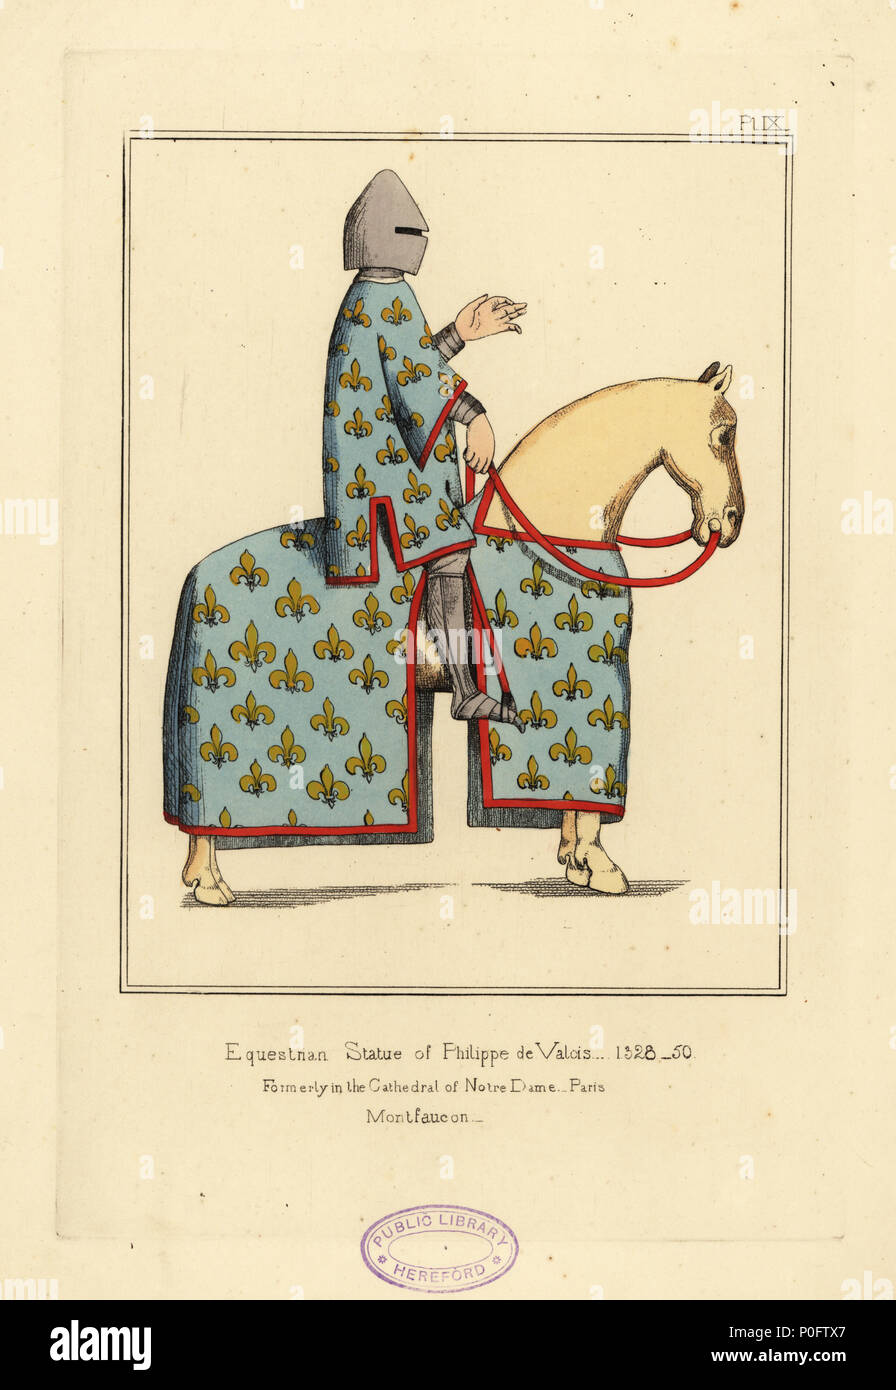 Teppich Von Bayeux Robin Hood Illustrations Of Mediaeval Costume In England Stockfotos